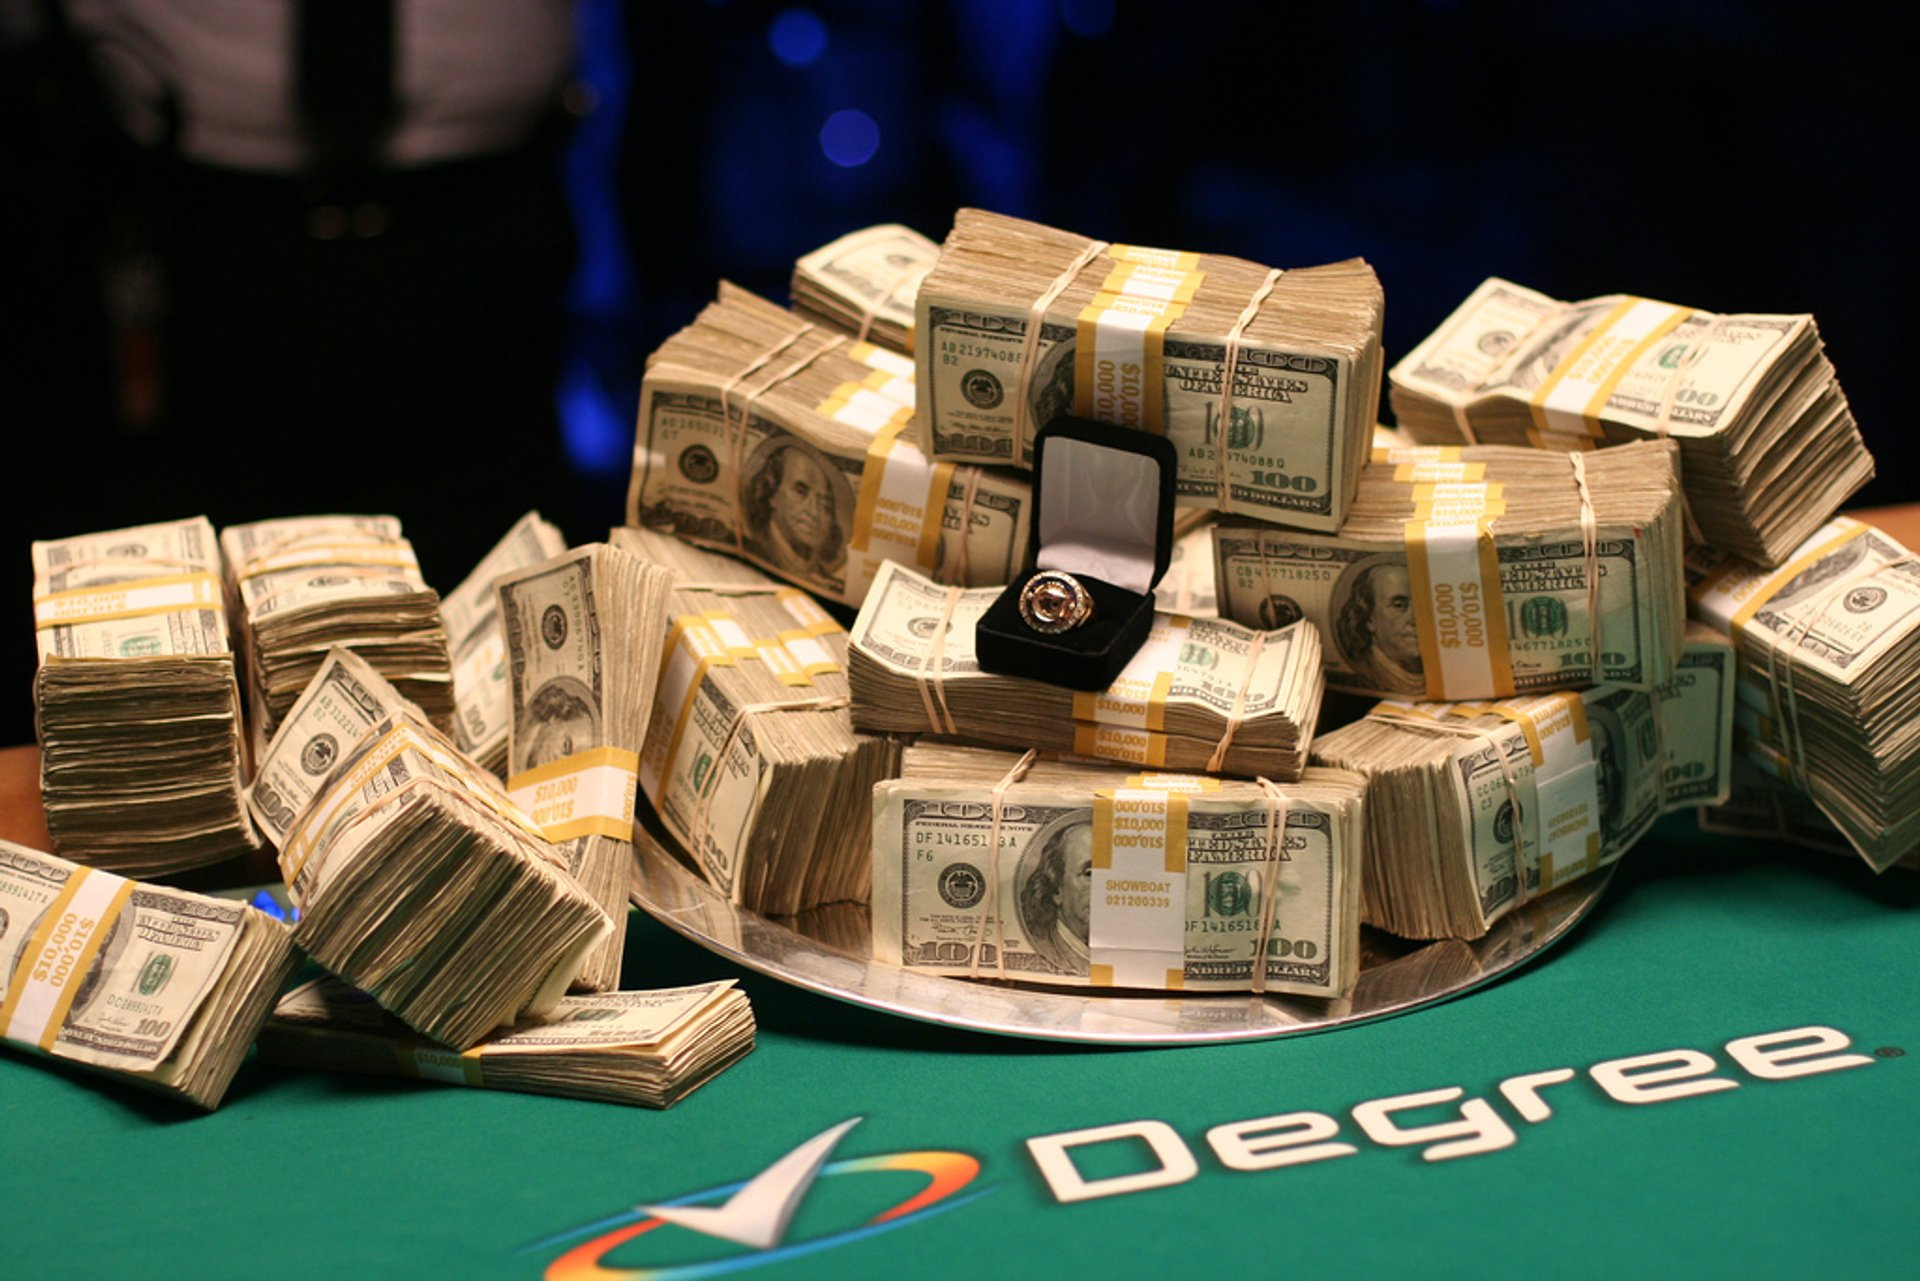 Best time for World Series of Poker (WSOP) in Las Vegas 2020